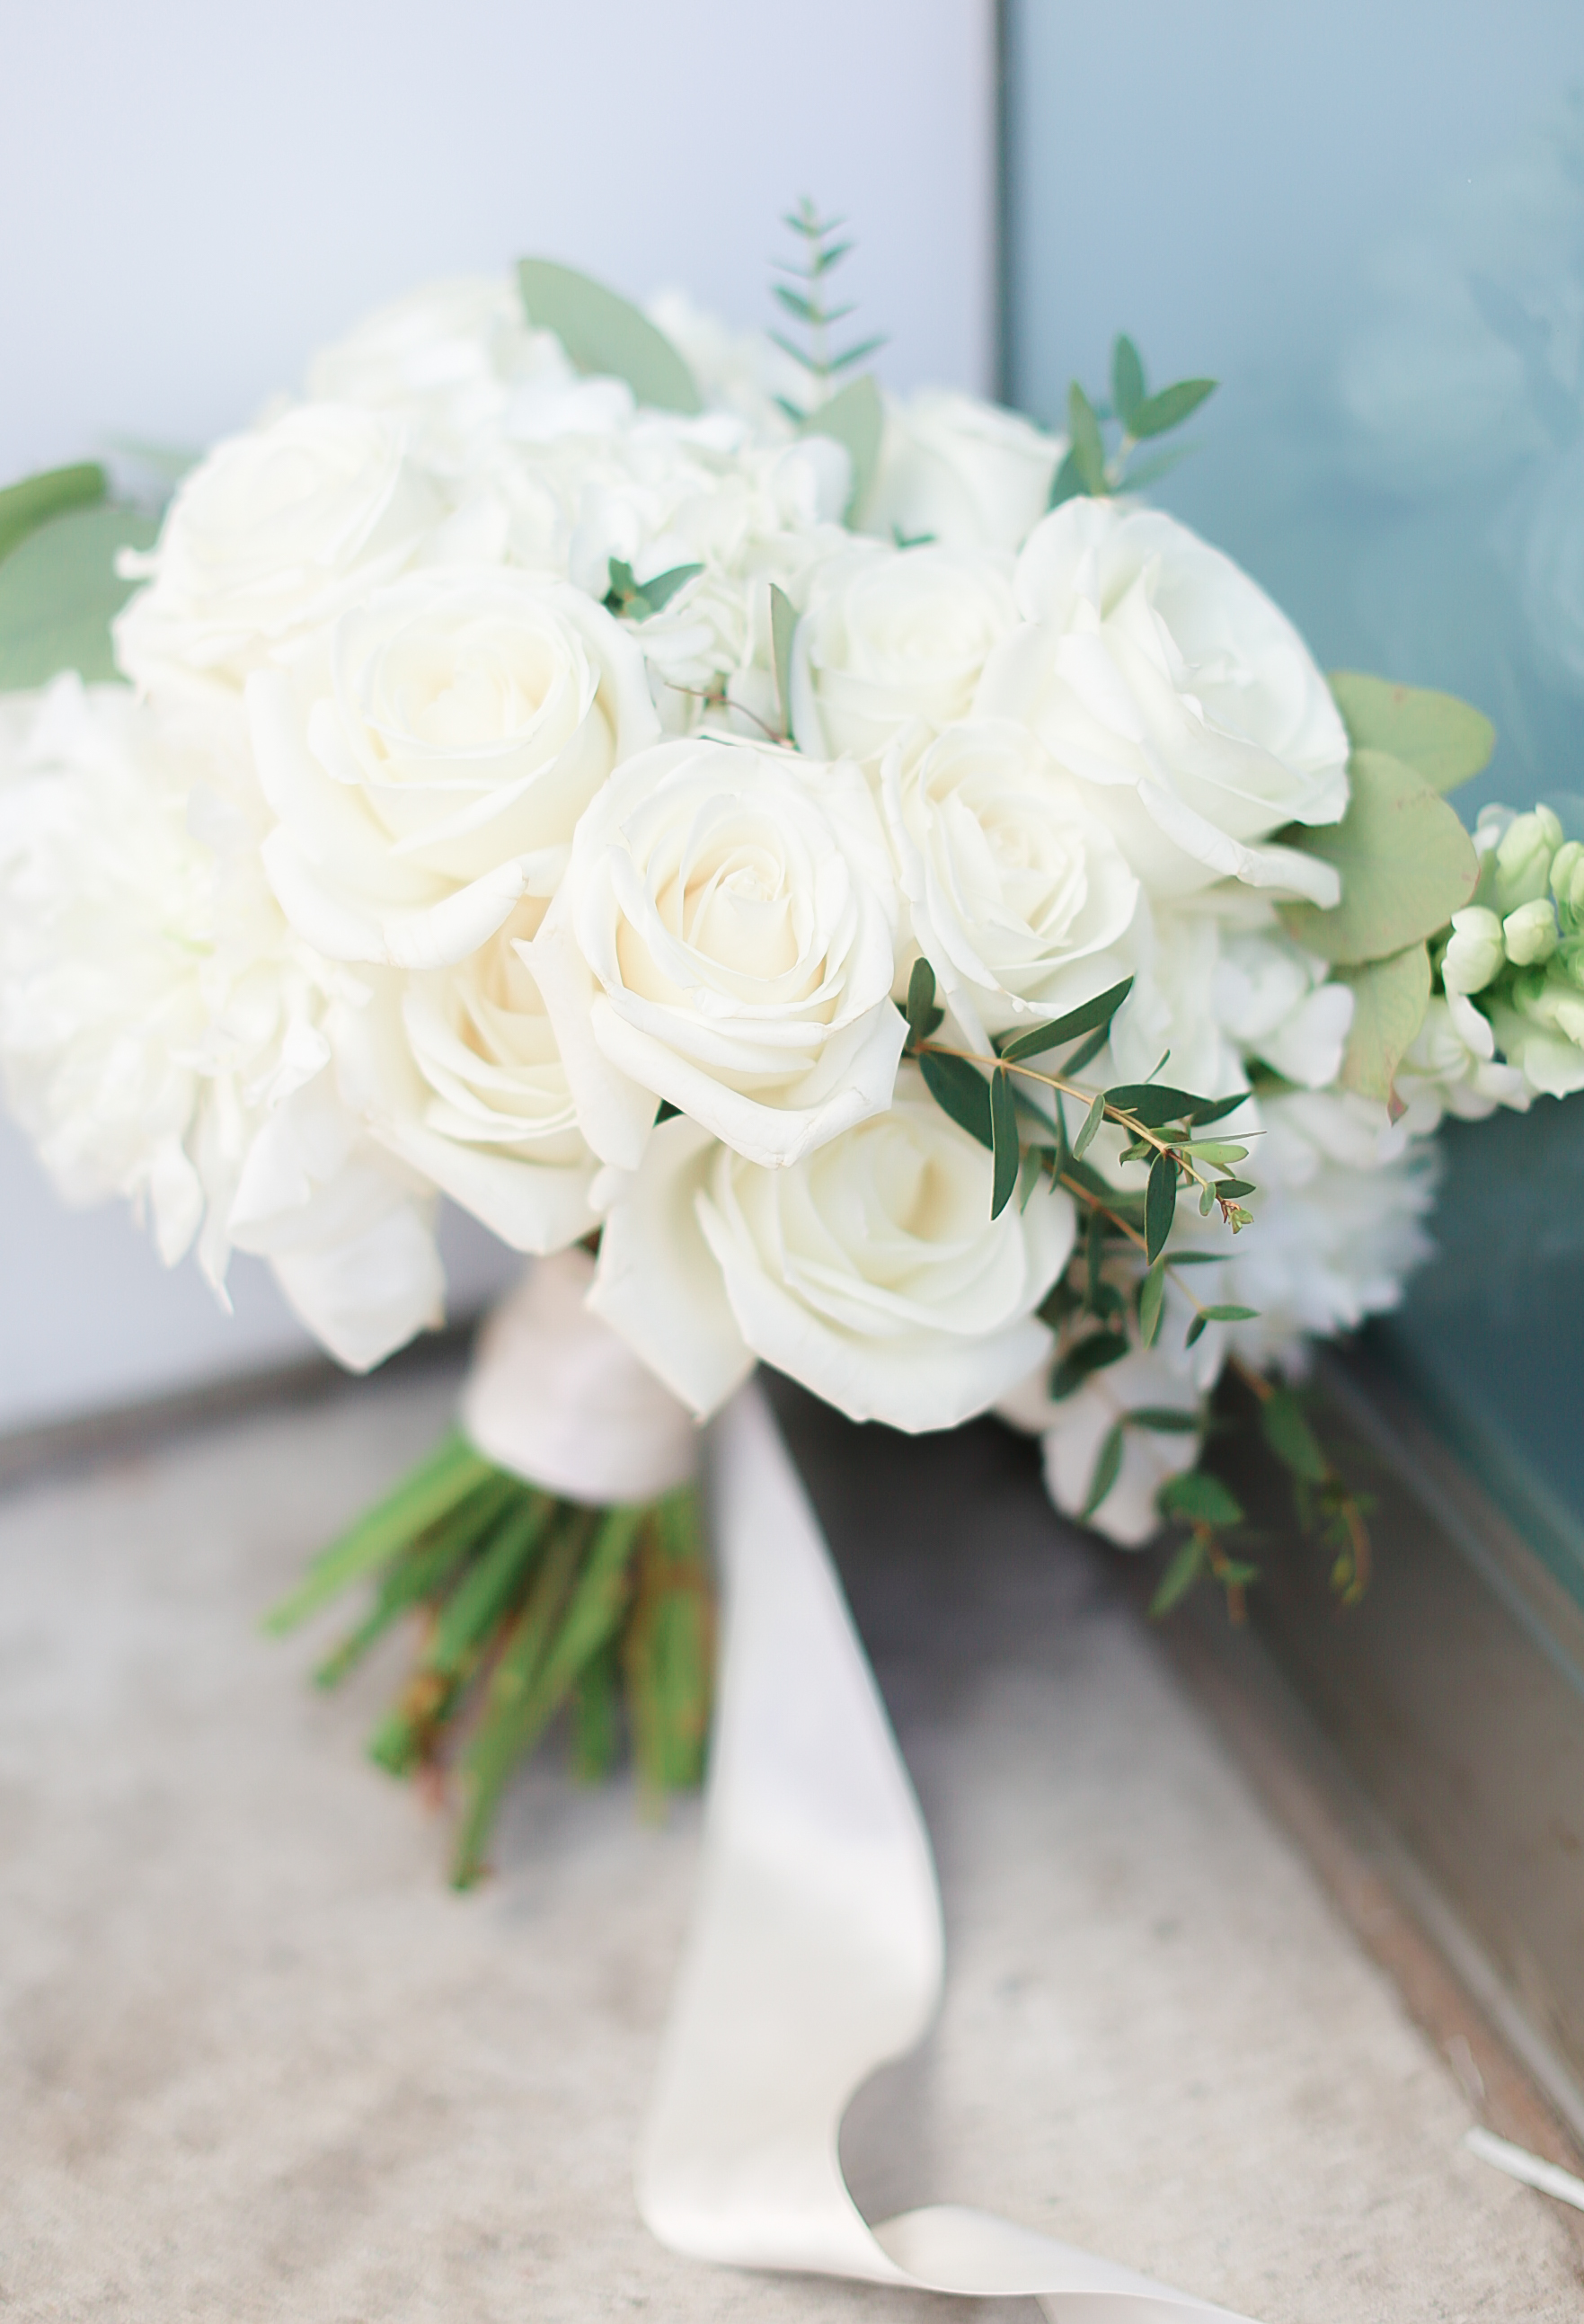 Thompson Toronto Wedding: Simple Greenery, Champagne & Gold Theme ...